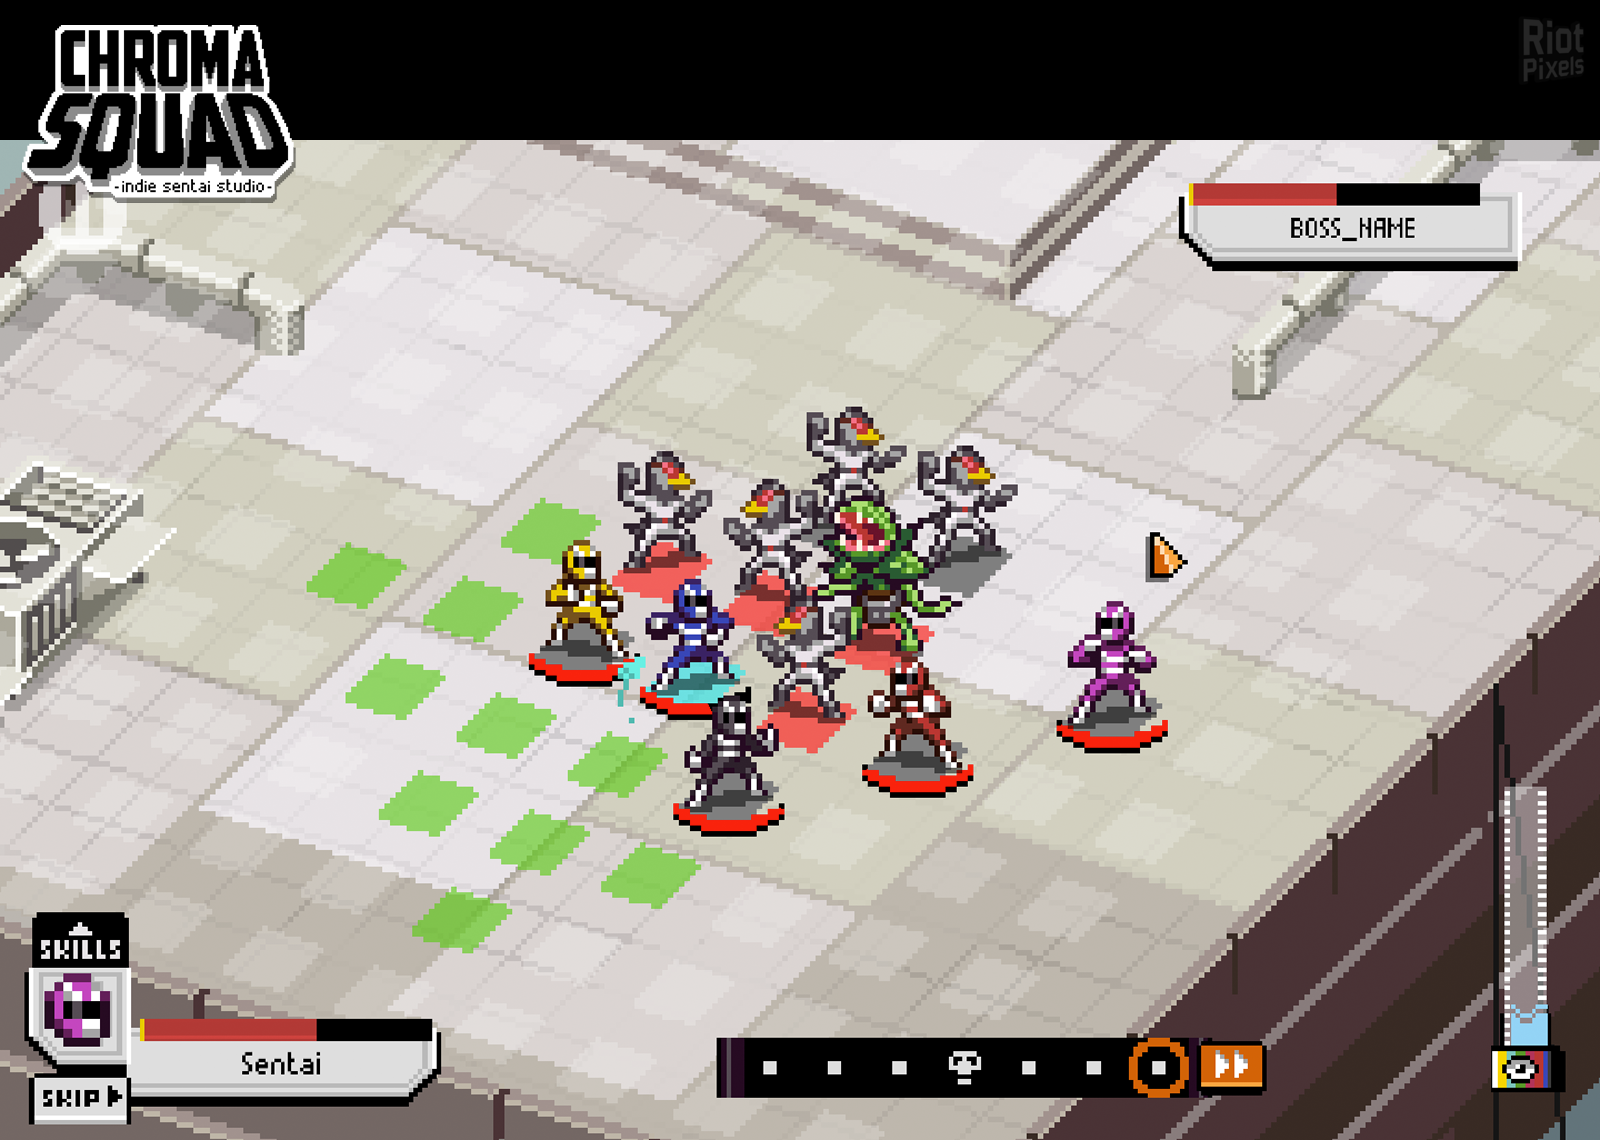 Chroma Squad (Steam Key / Region Free)